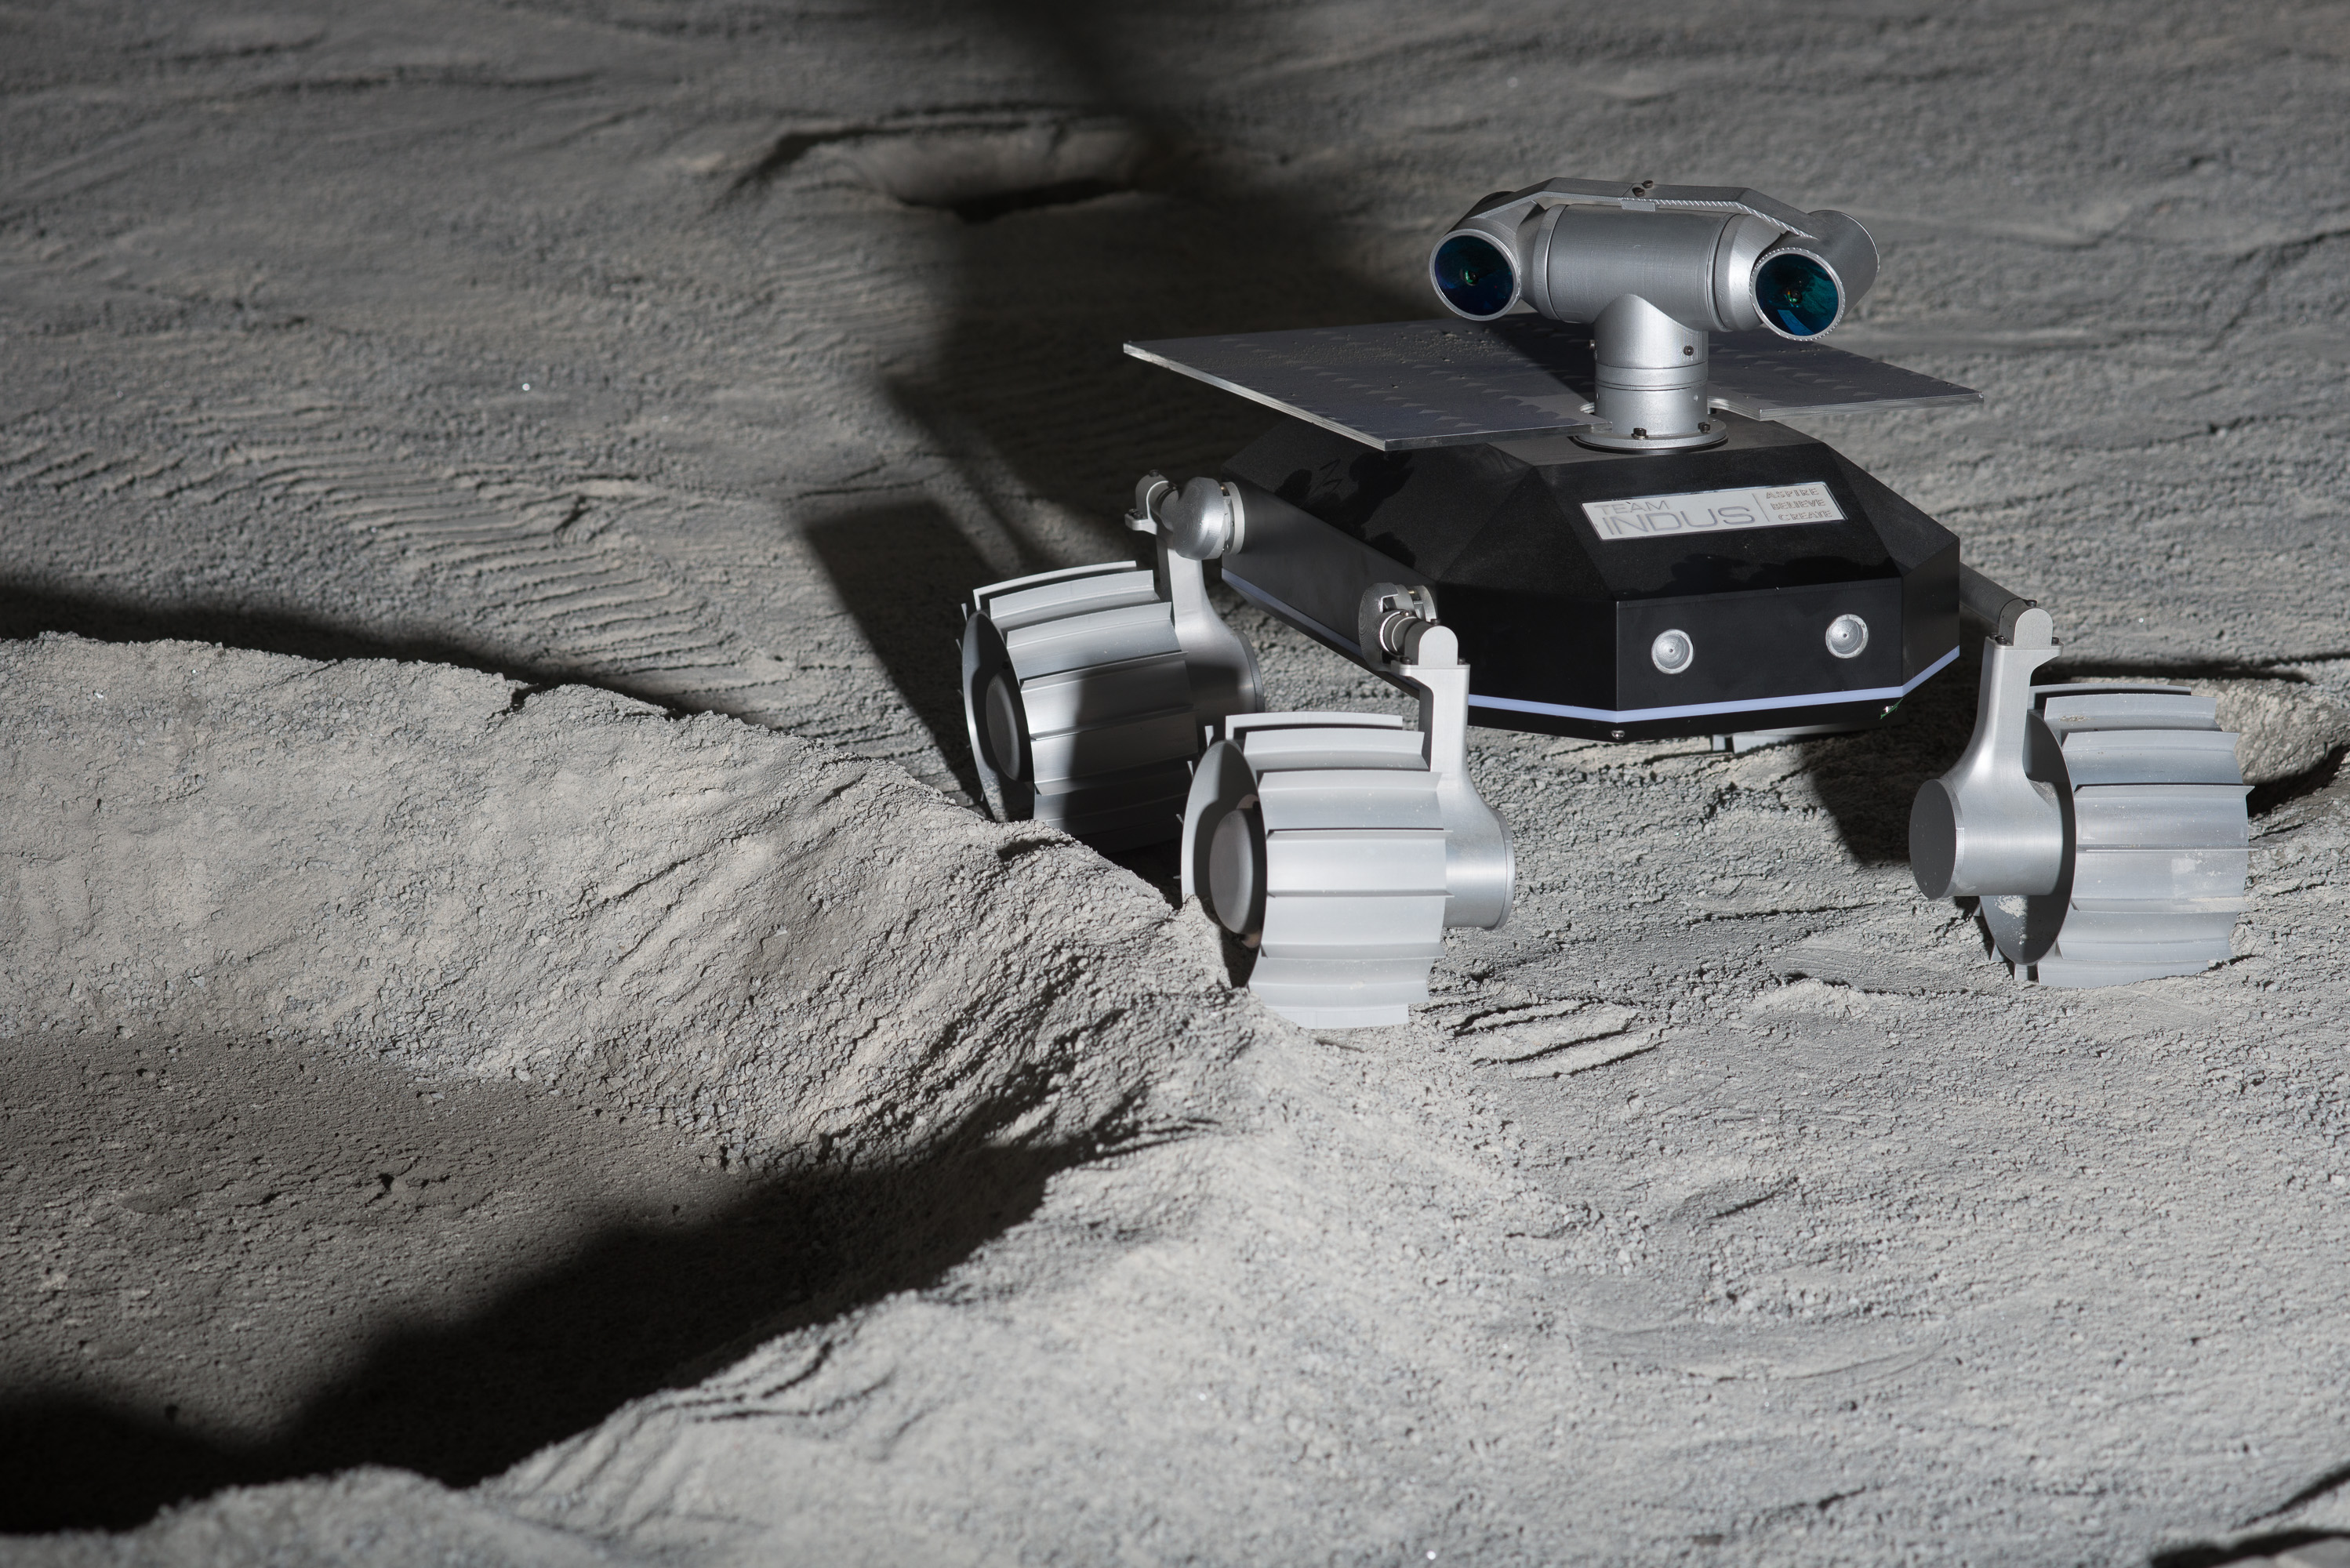 Courtesy of Indus, Google Lunar XPRIZE